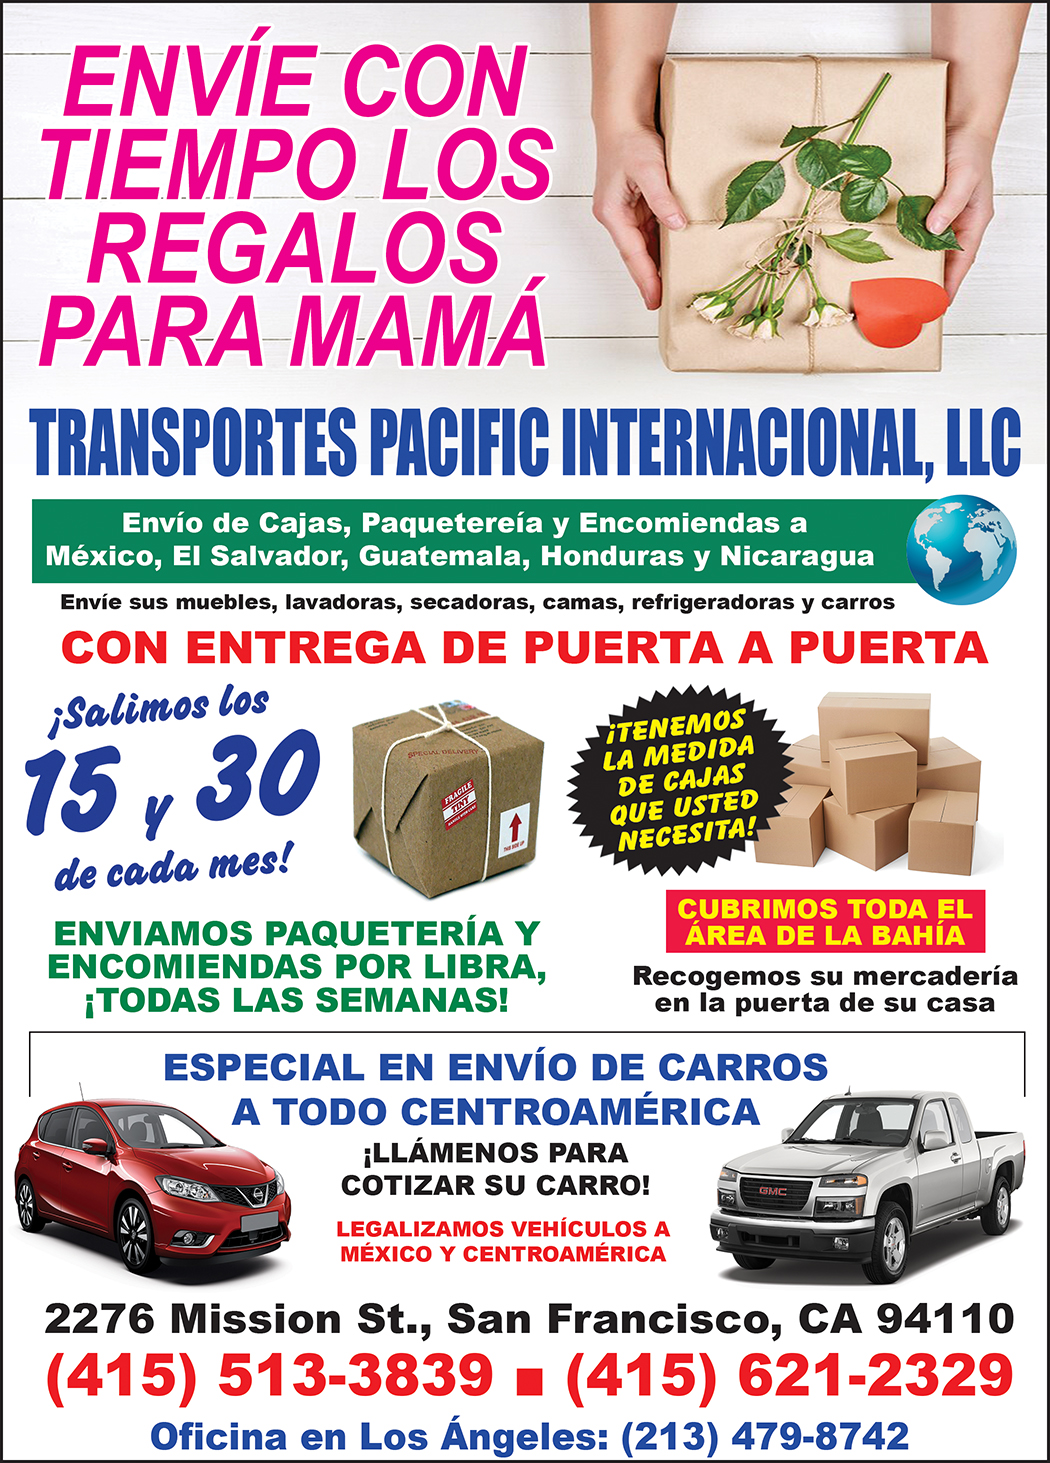 Transportes Pacific Internacional 1 Pag mARZO 2019 copy.jpg